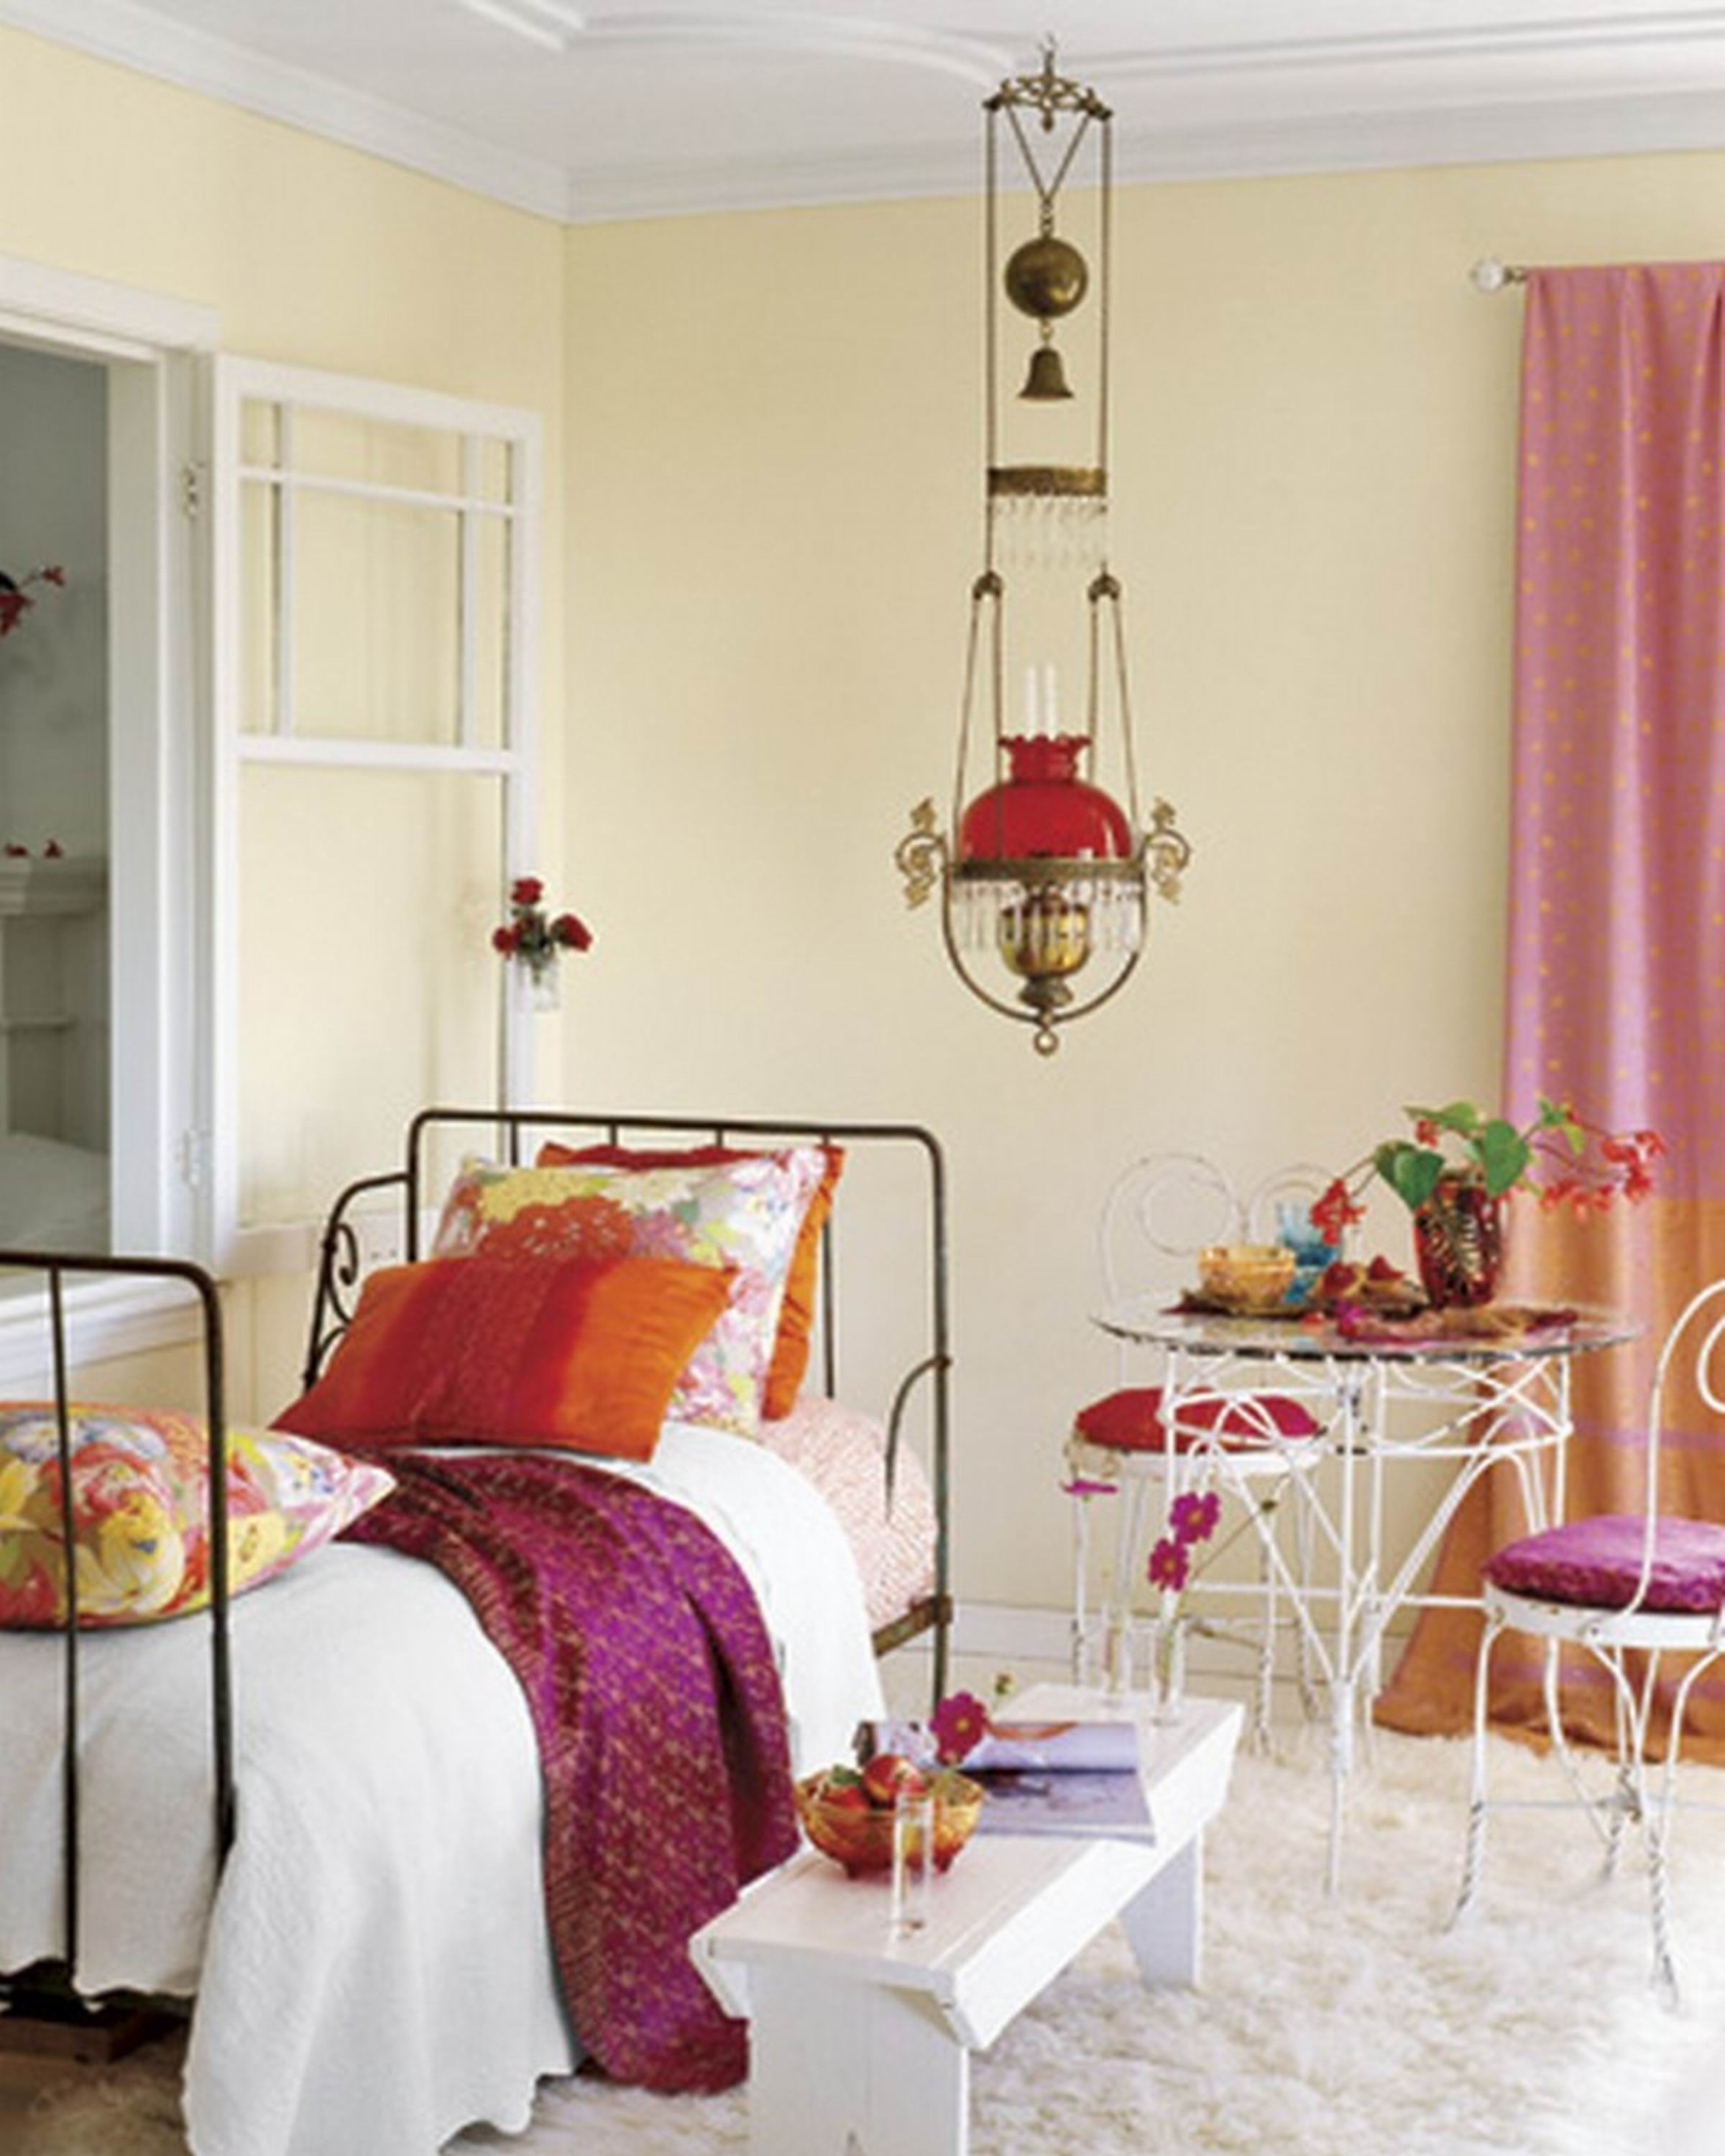 Country Bedroom Decorating Ideas On A Budget Continue With The Details At Image Link Interiordecor